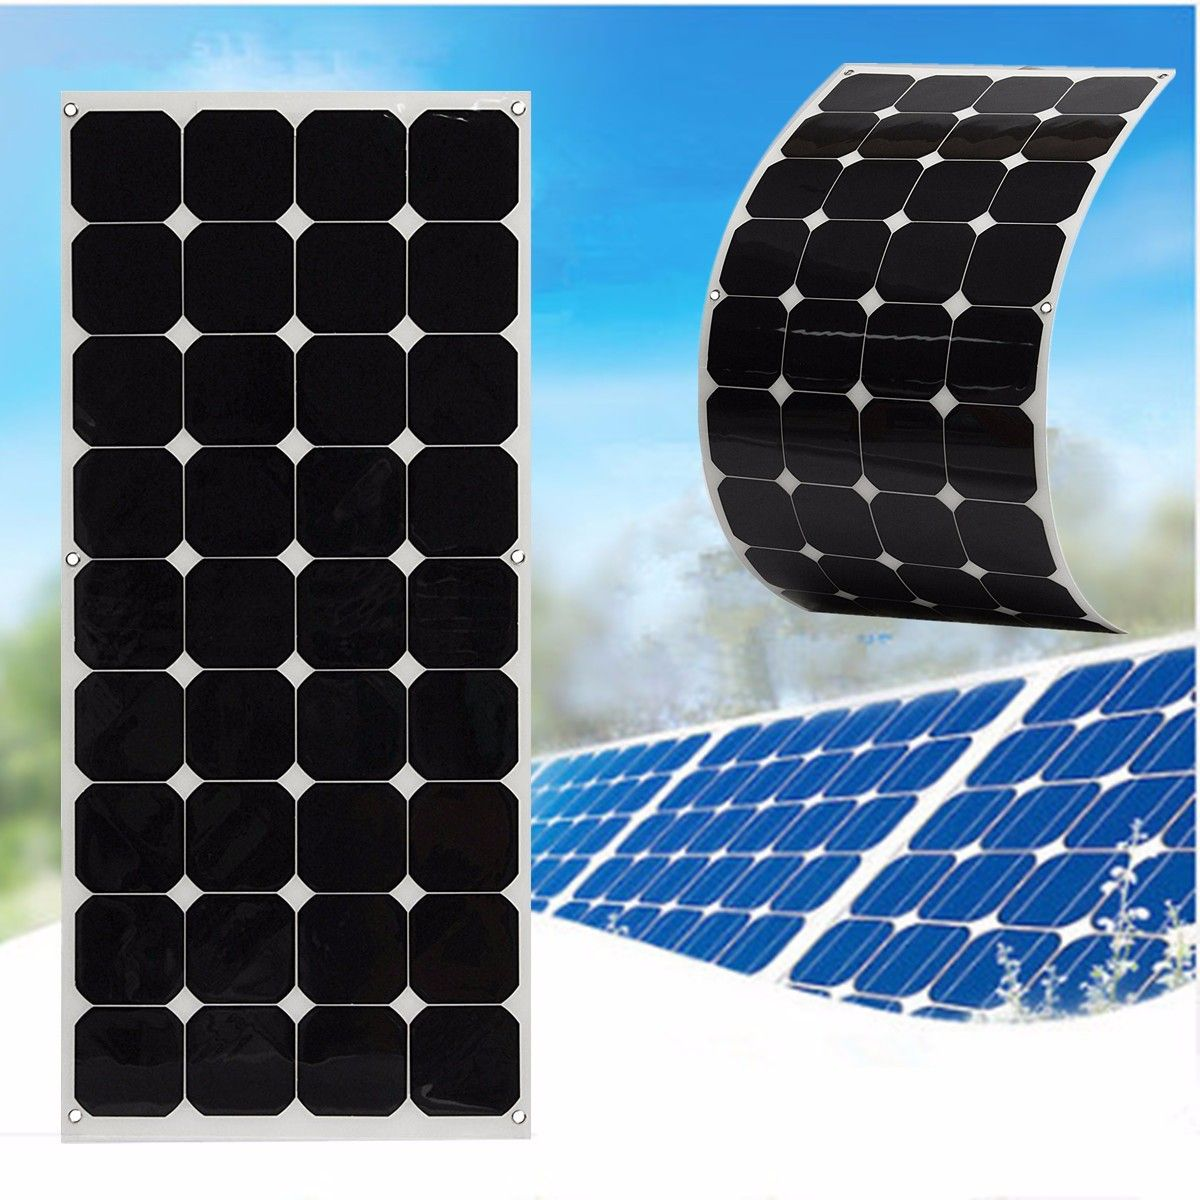 Us 219 93 Elfeland Sp 23 130w 18v Sun Power Semi Flexible Solar Panel With 1 5m Cable Arduino Compatible Scm Diy Kits From Electronics On Banggood Com Flexible Solar Panels Solar Panels Solar